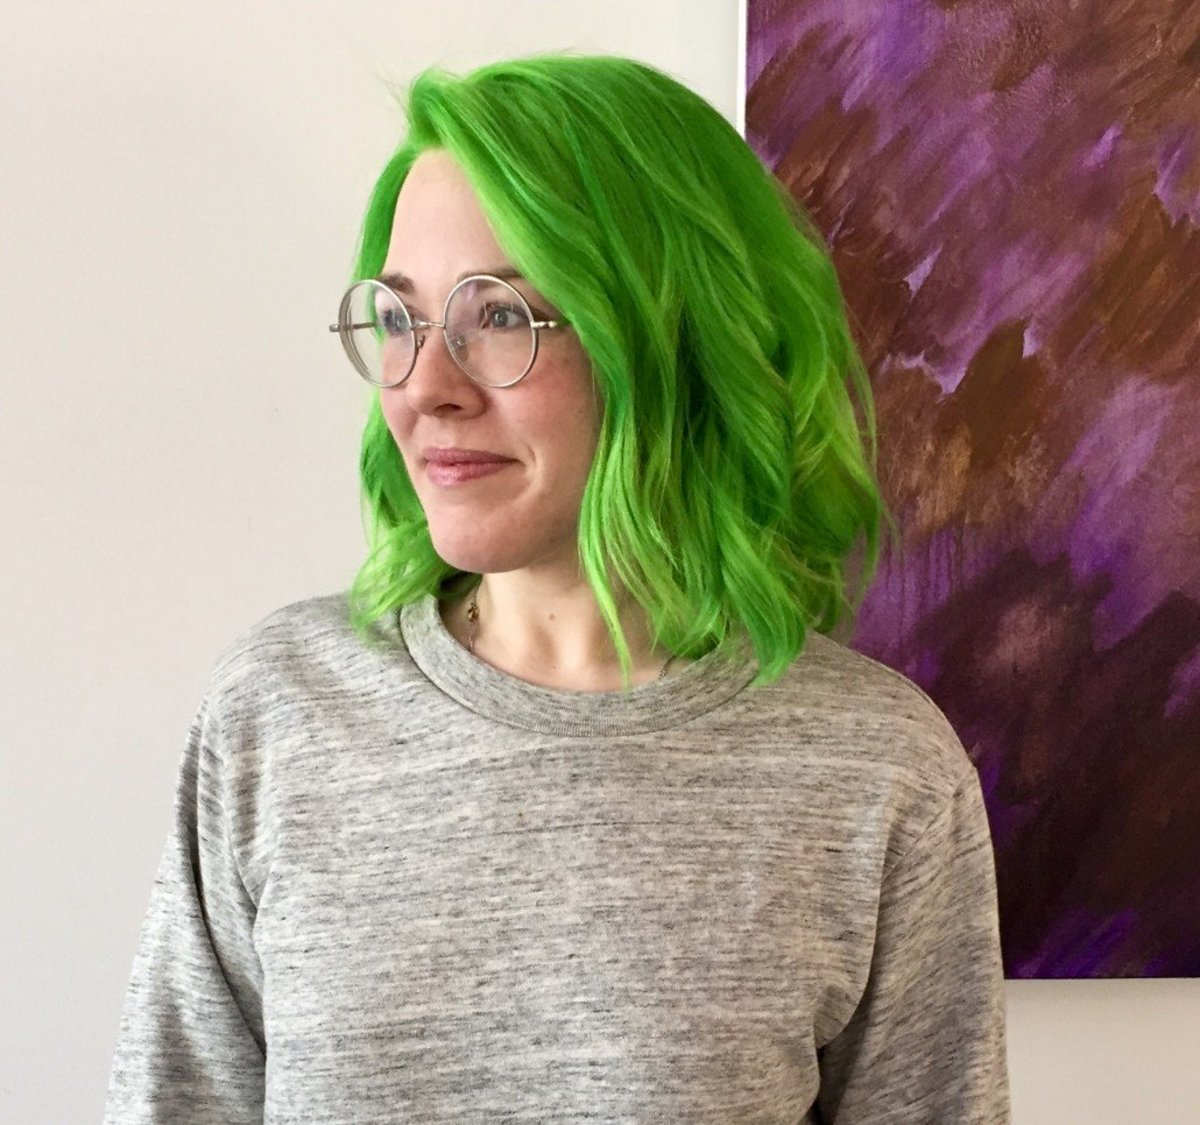 Hair DIY 5 Ideas For Green Hair And How To Do Them At